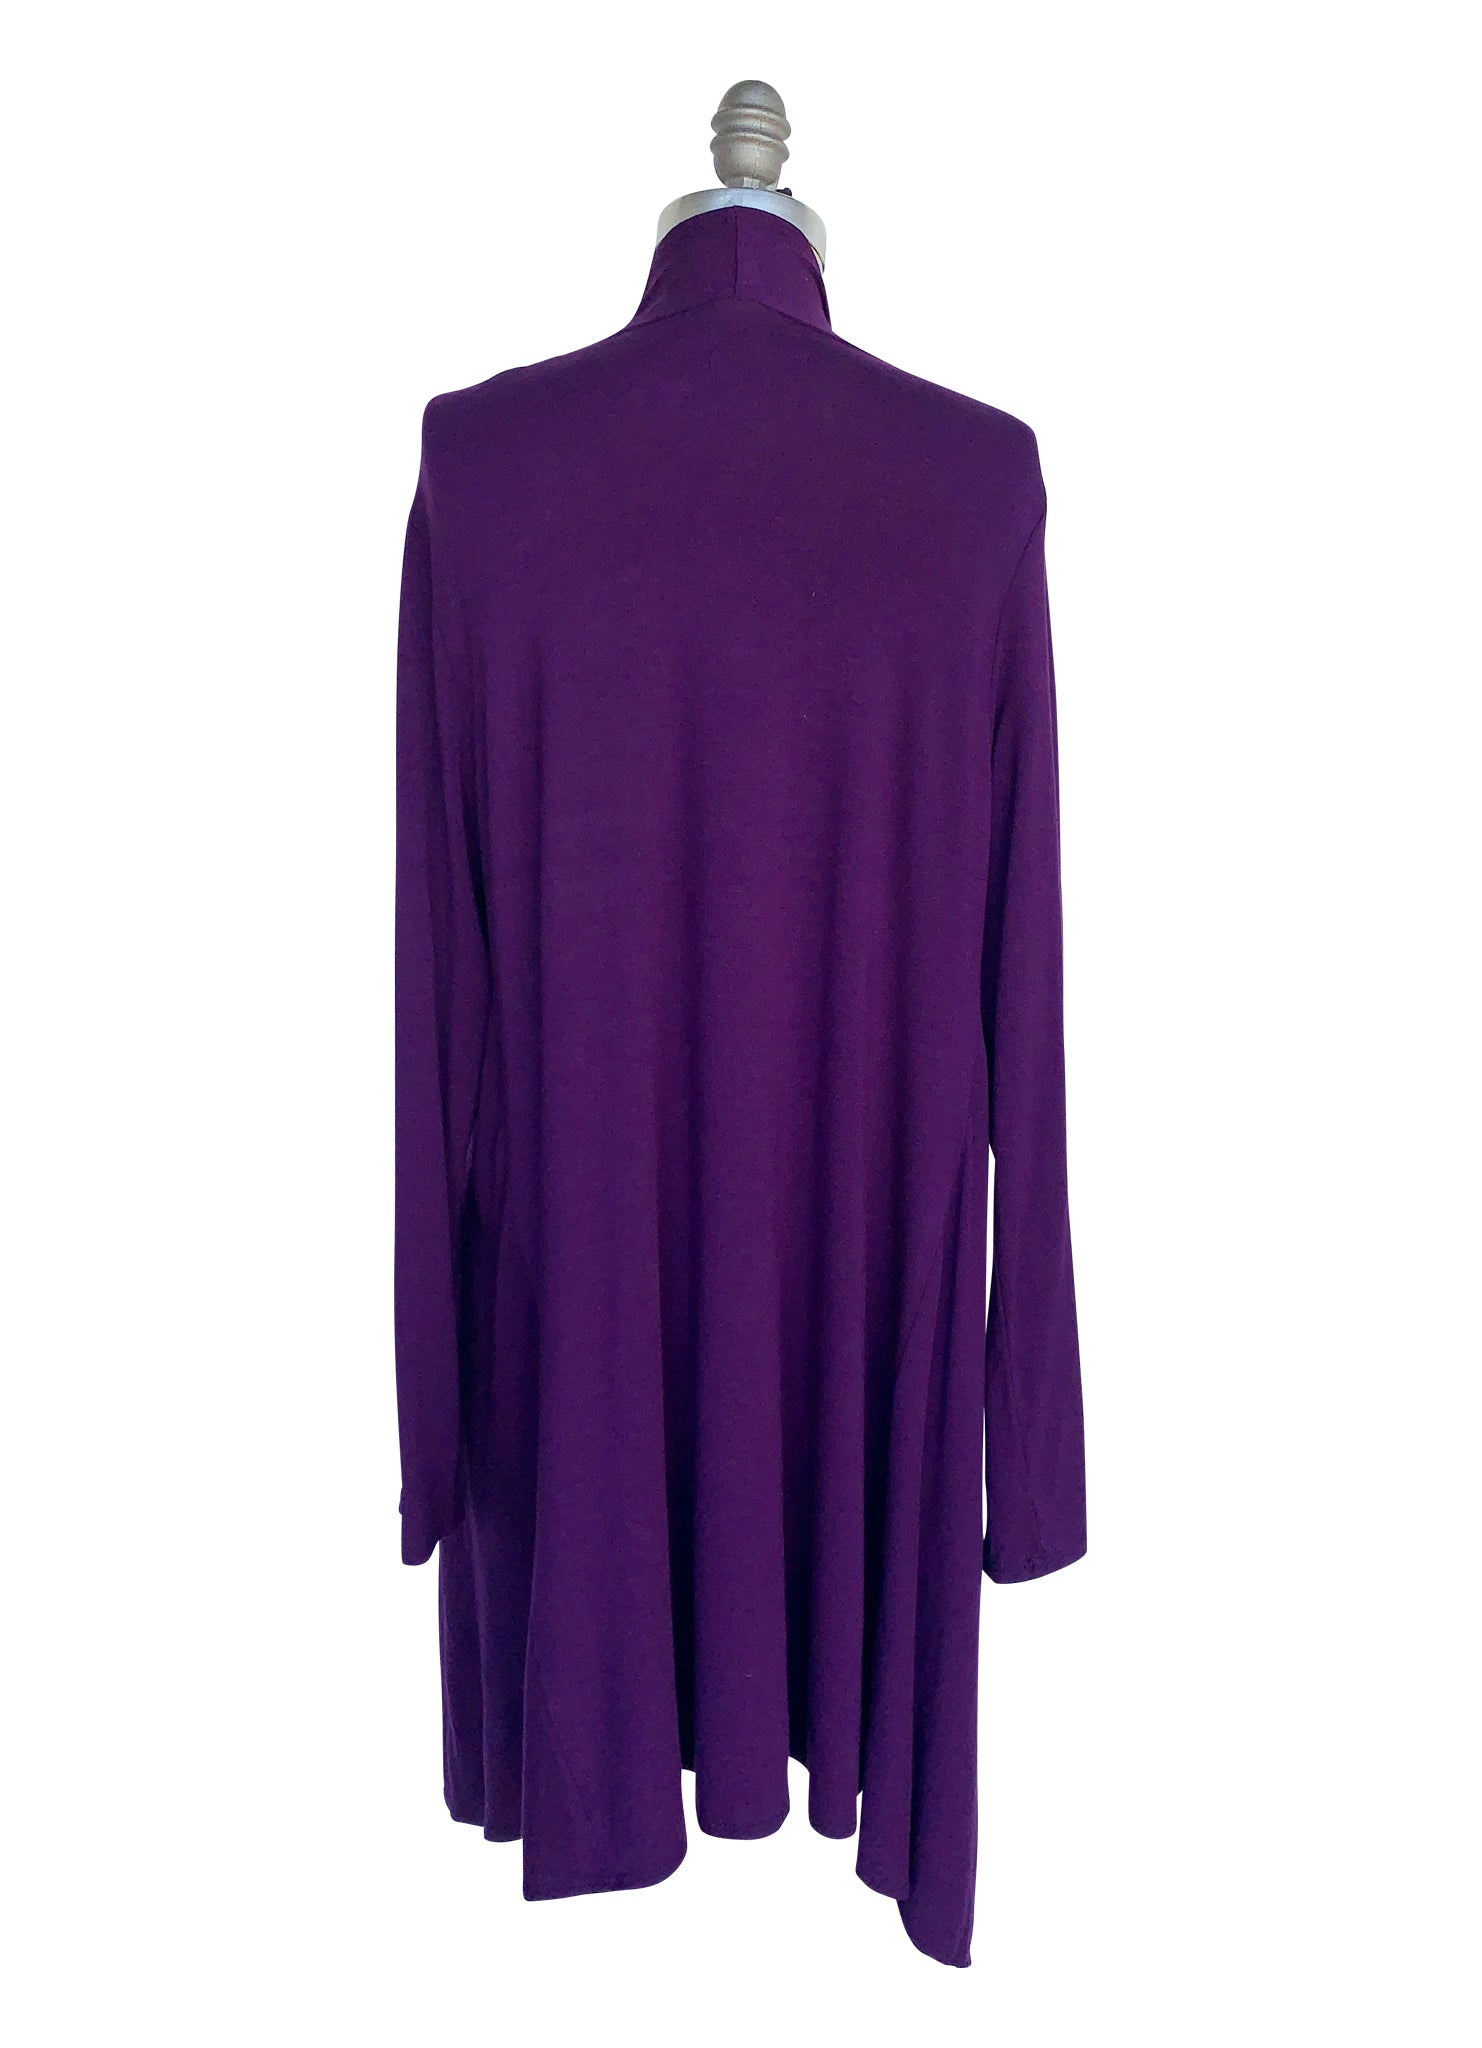 Criss Cross Blouse and Drape Front Jacket Bundle in Purples - Top - Dyetology